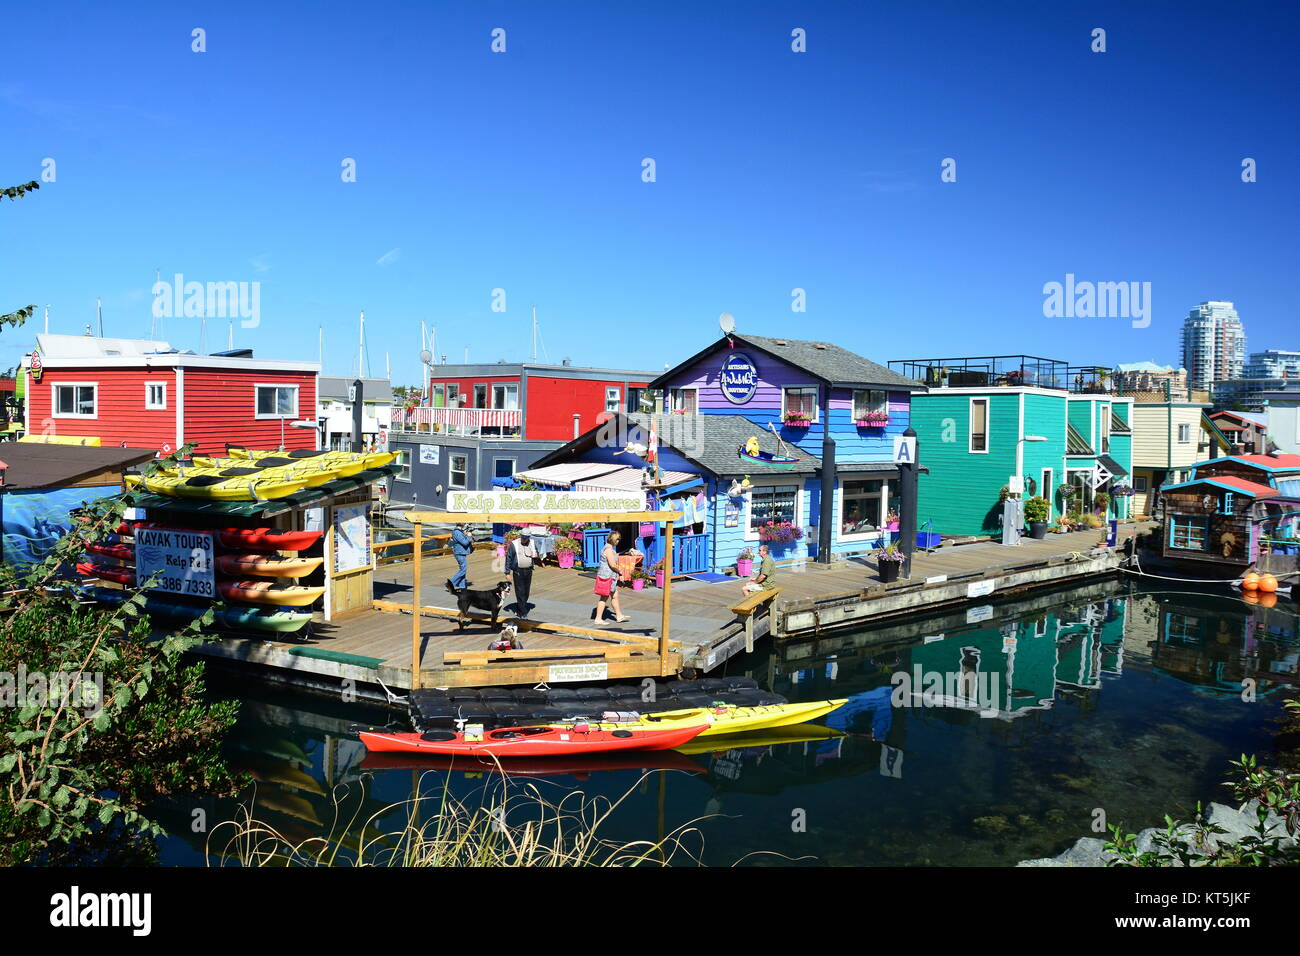 Colorful buildings at Fisherman's Wharf in Victoria BC,Canada. Stock Photo